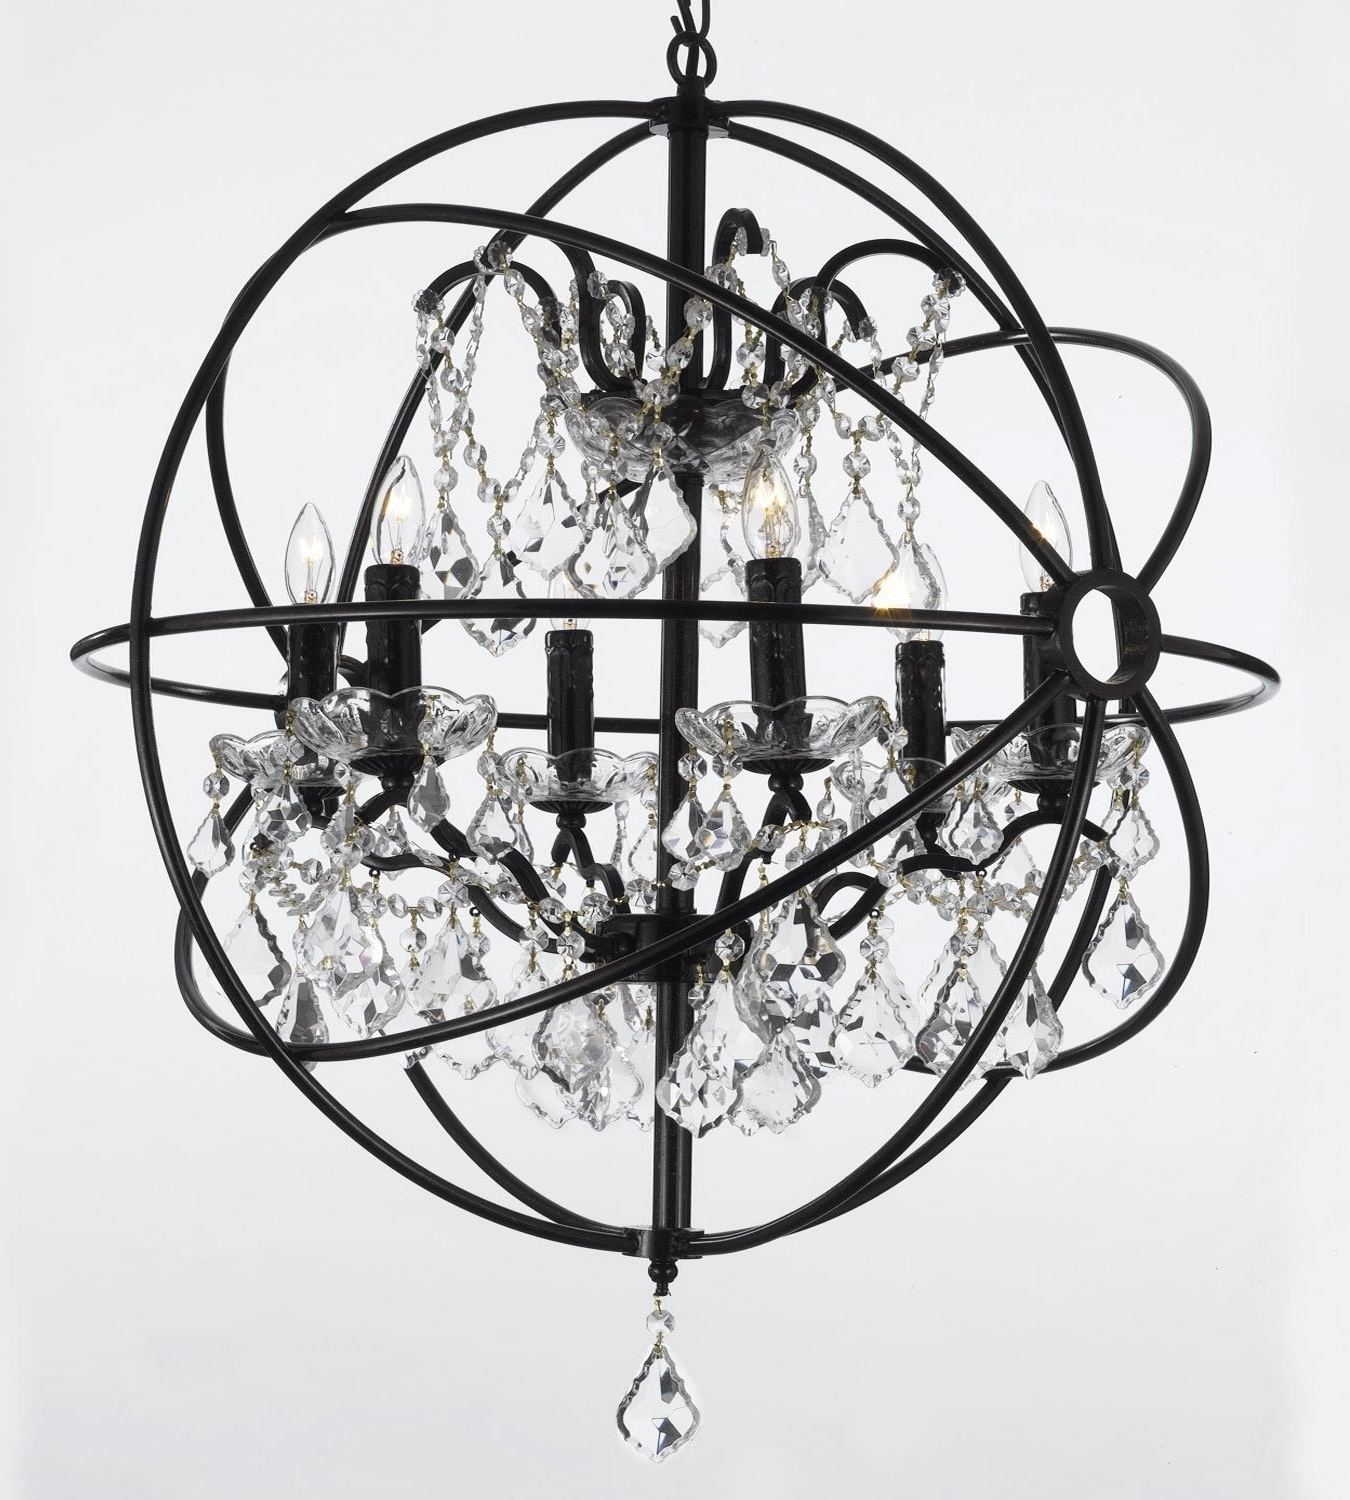 Foucault's Orb Wrought Iron Crystal Chandelier Lighting Country Throughout 2018 Orb Chandelier (View 4 of 15)